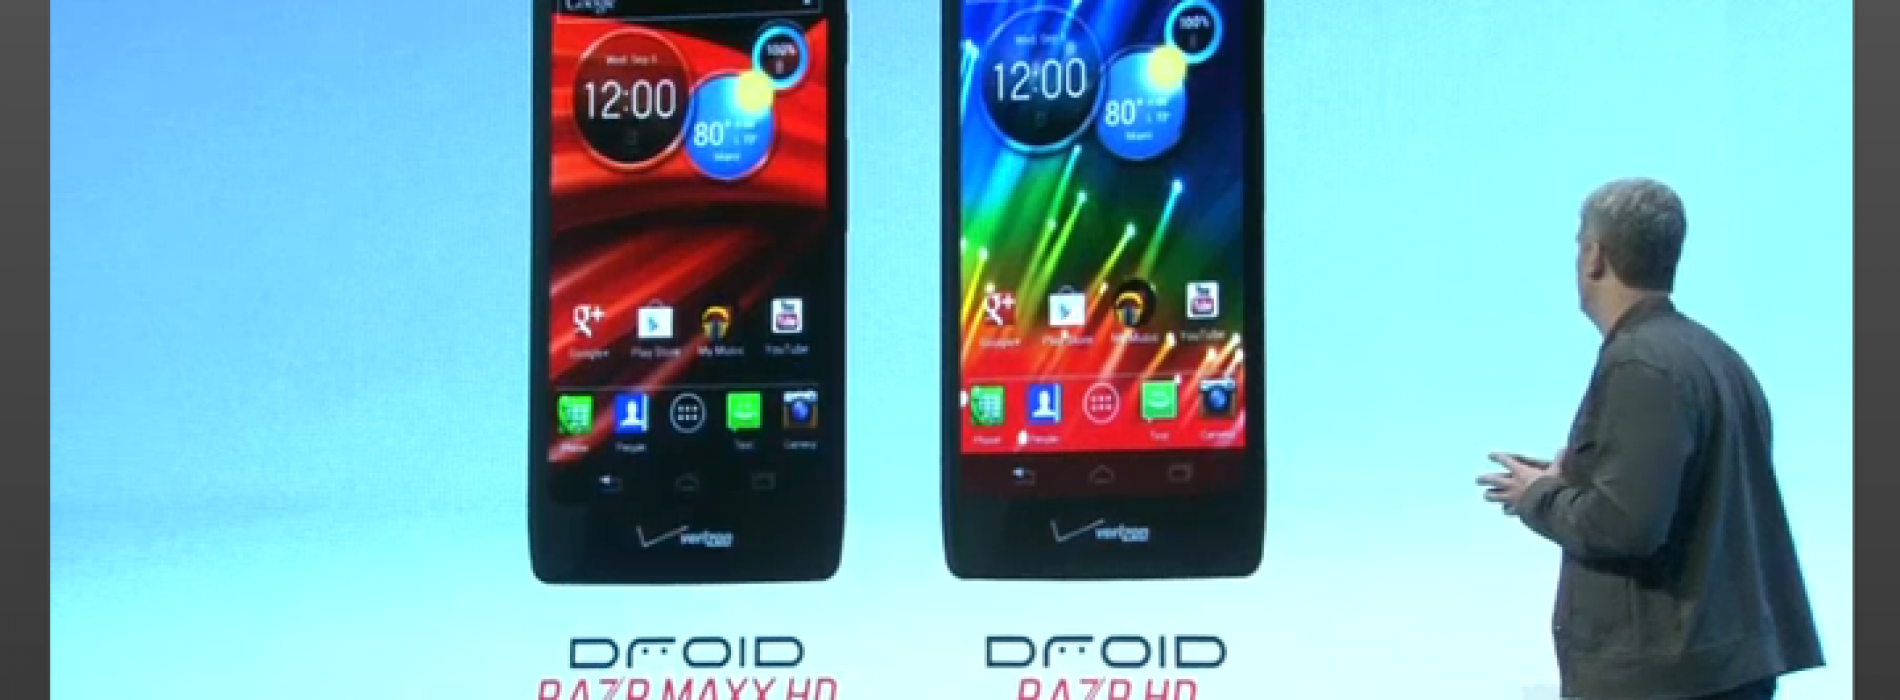 Droid Razr HD, Droid Razr Maxx HD to arrive October 18